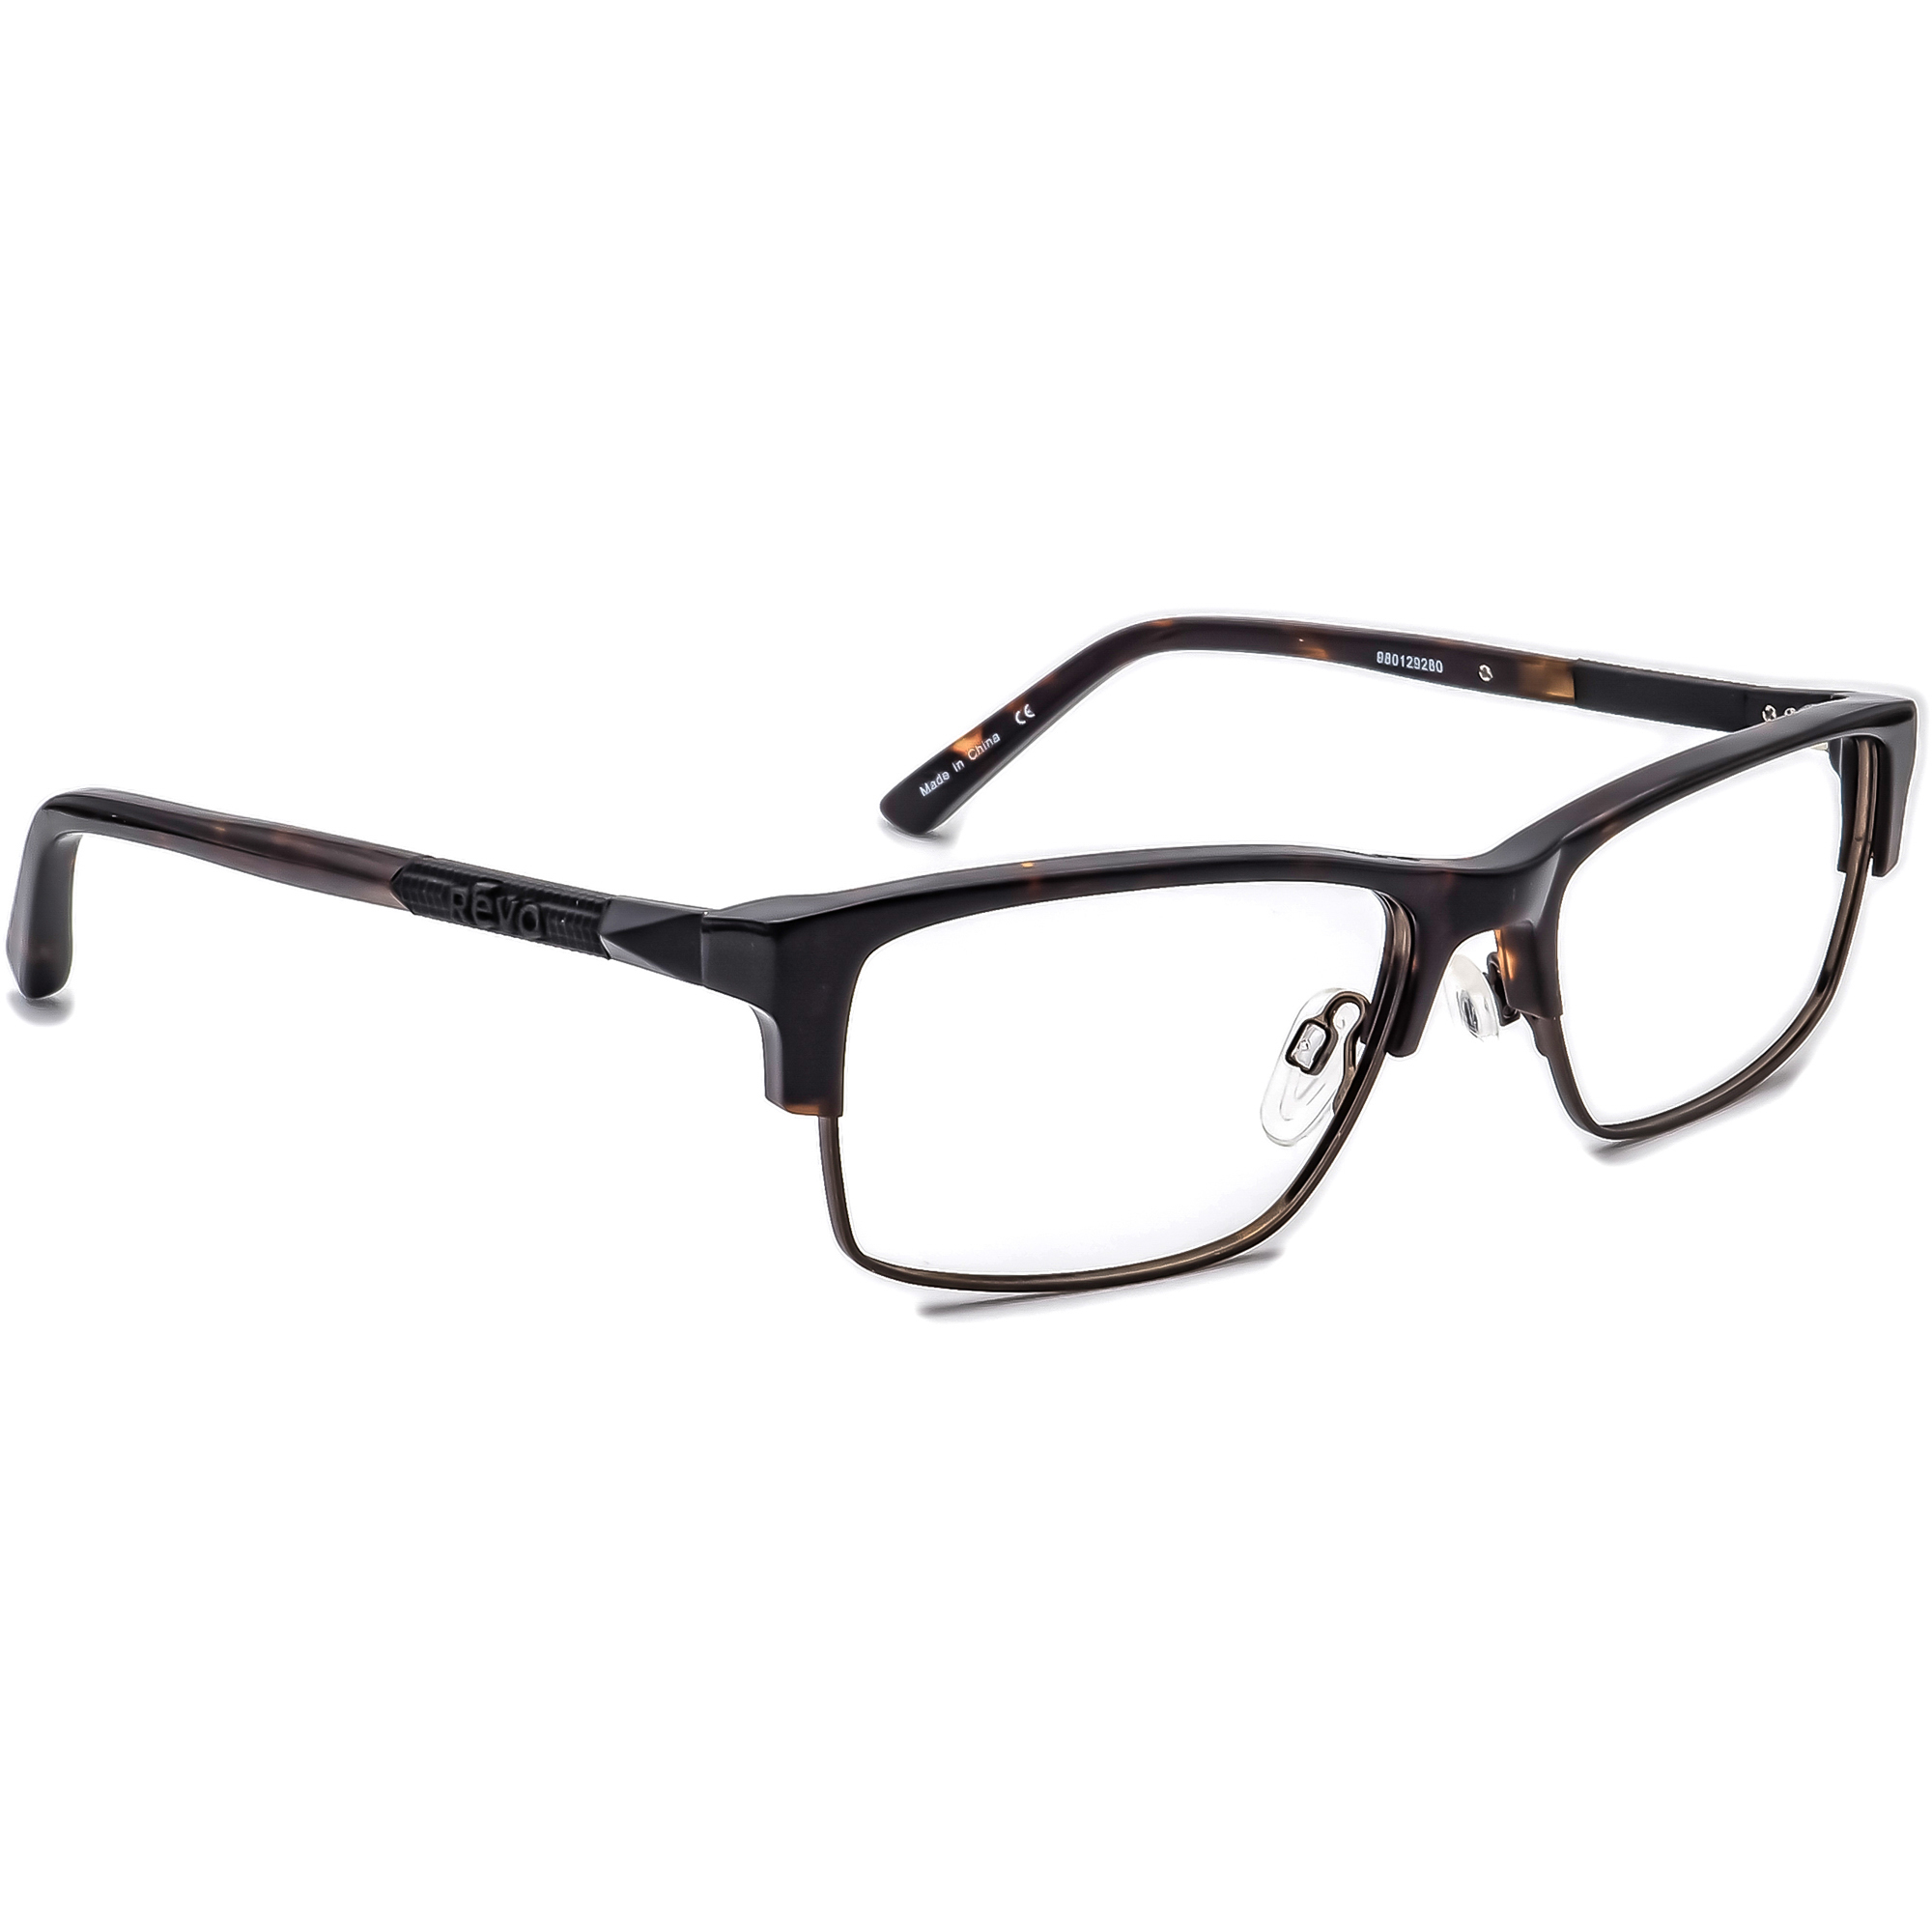 Revo RE 8016 02 Eyeglasses